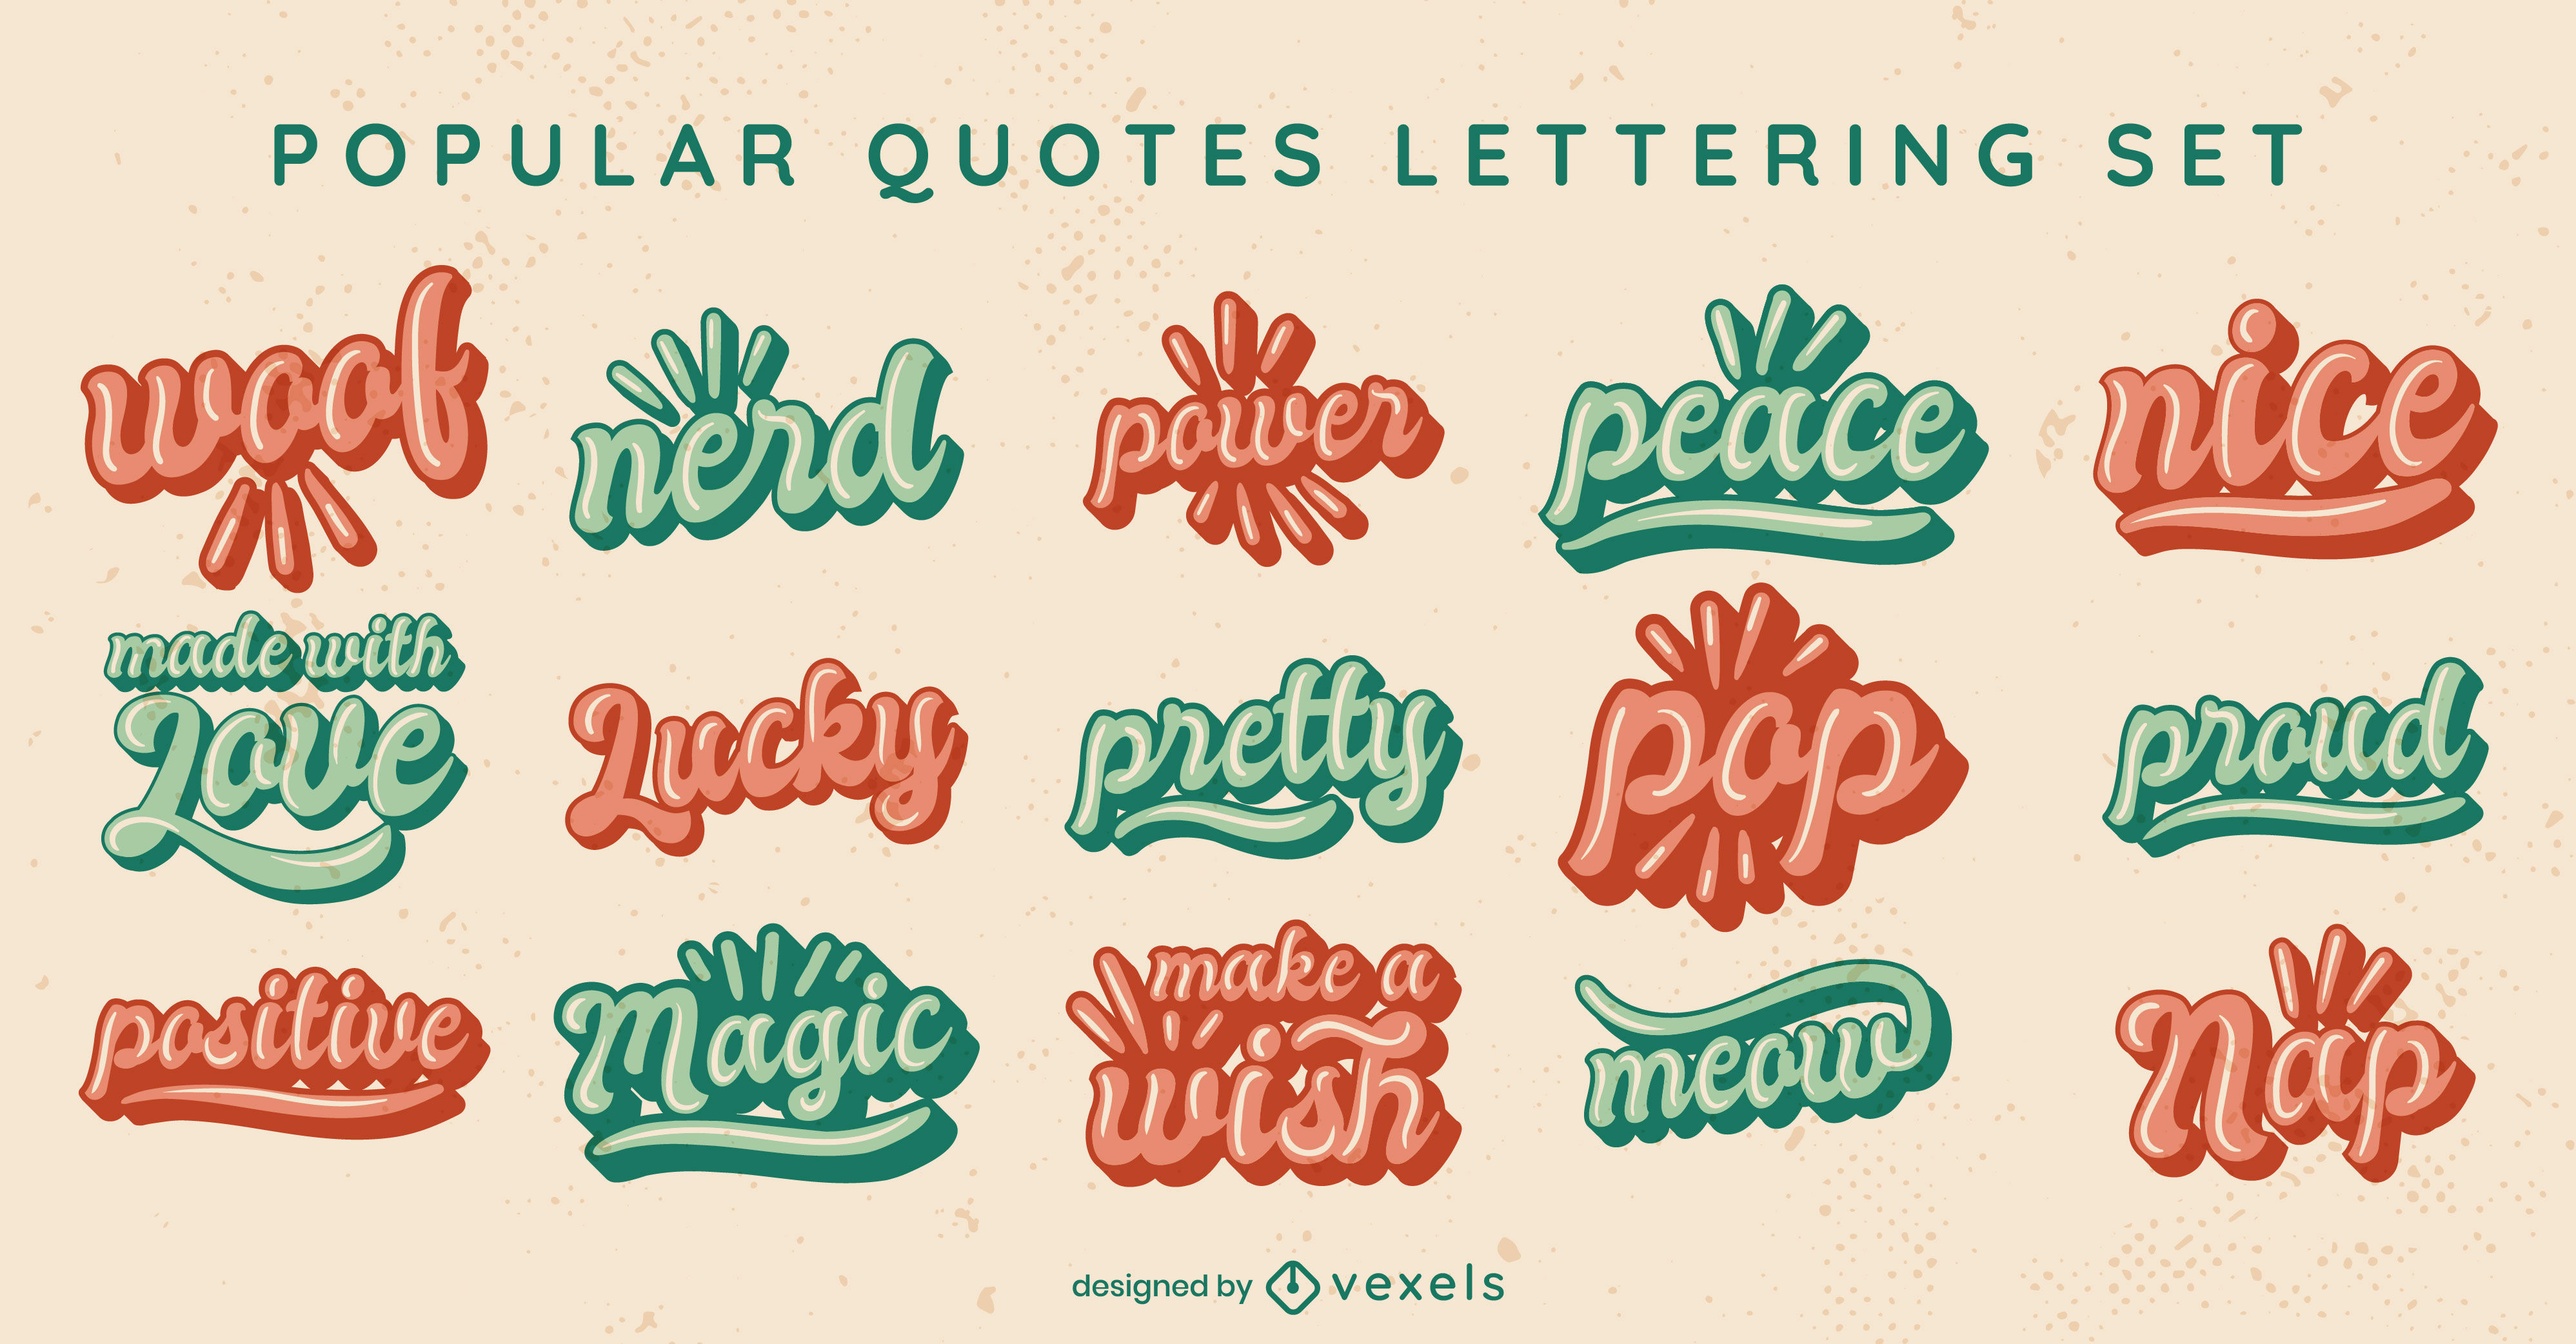 Popular words and quotes lettering set